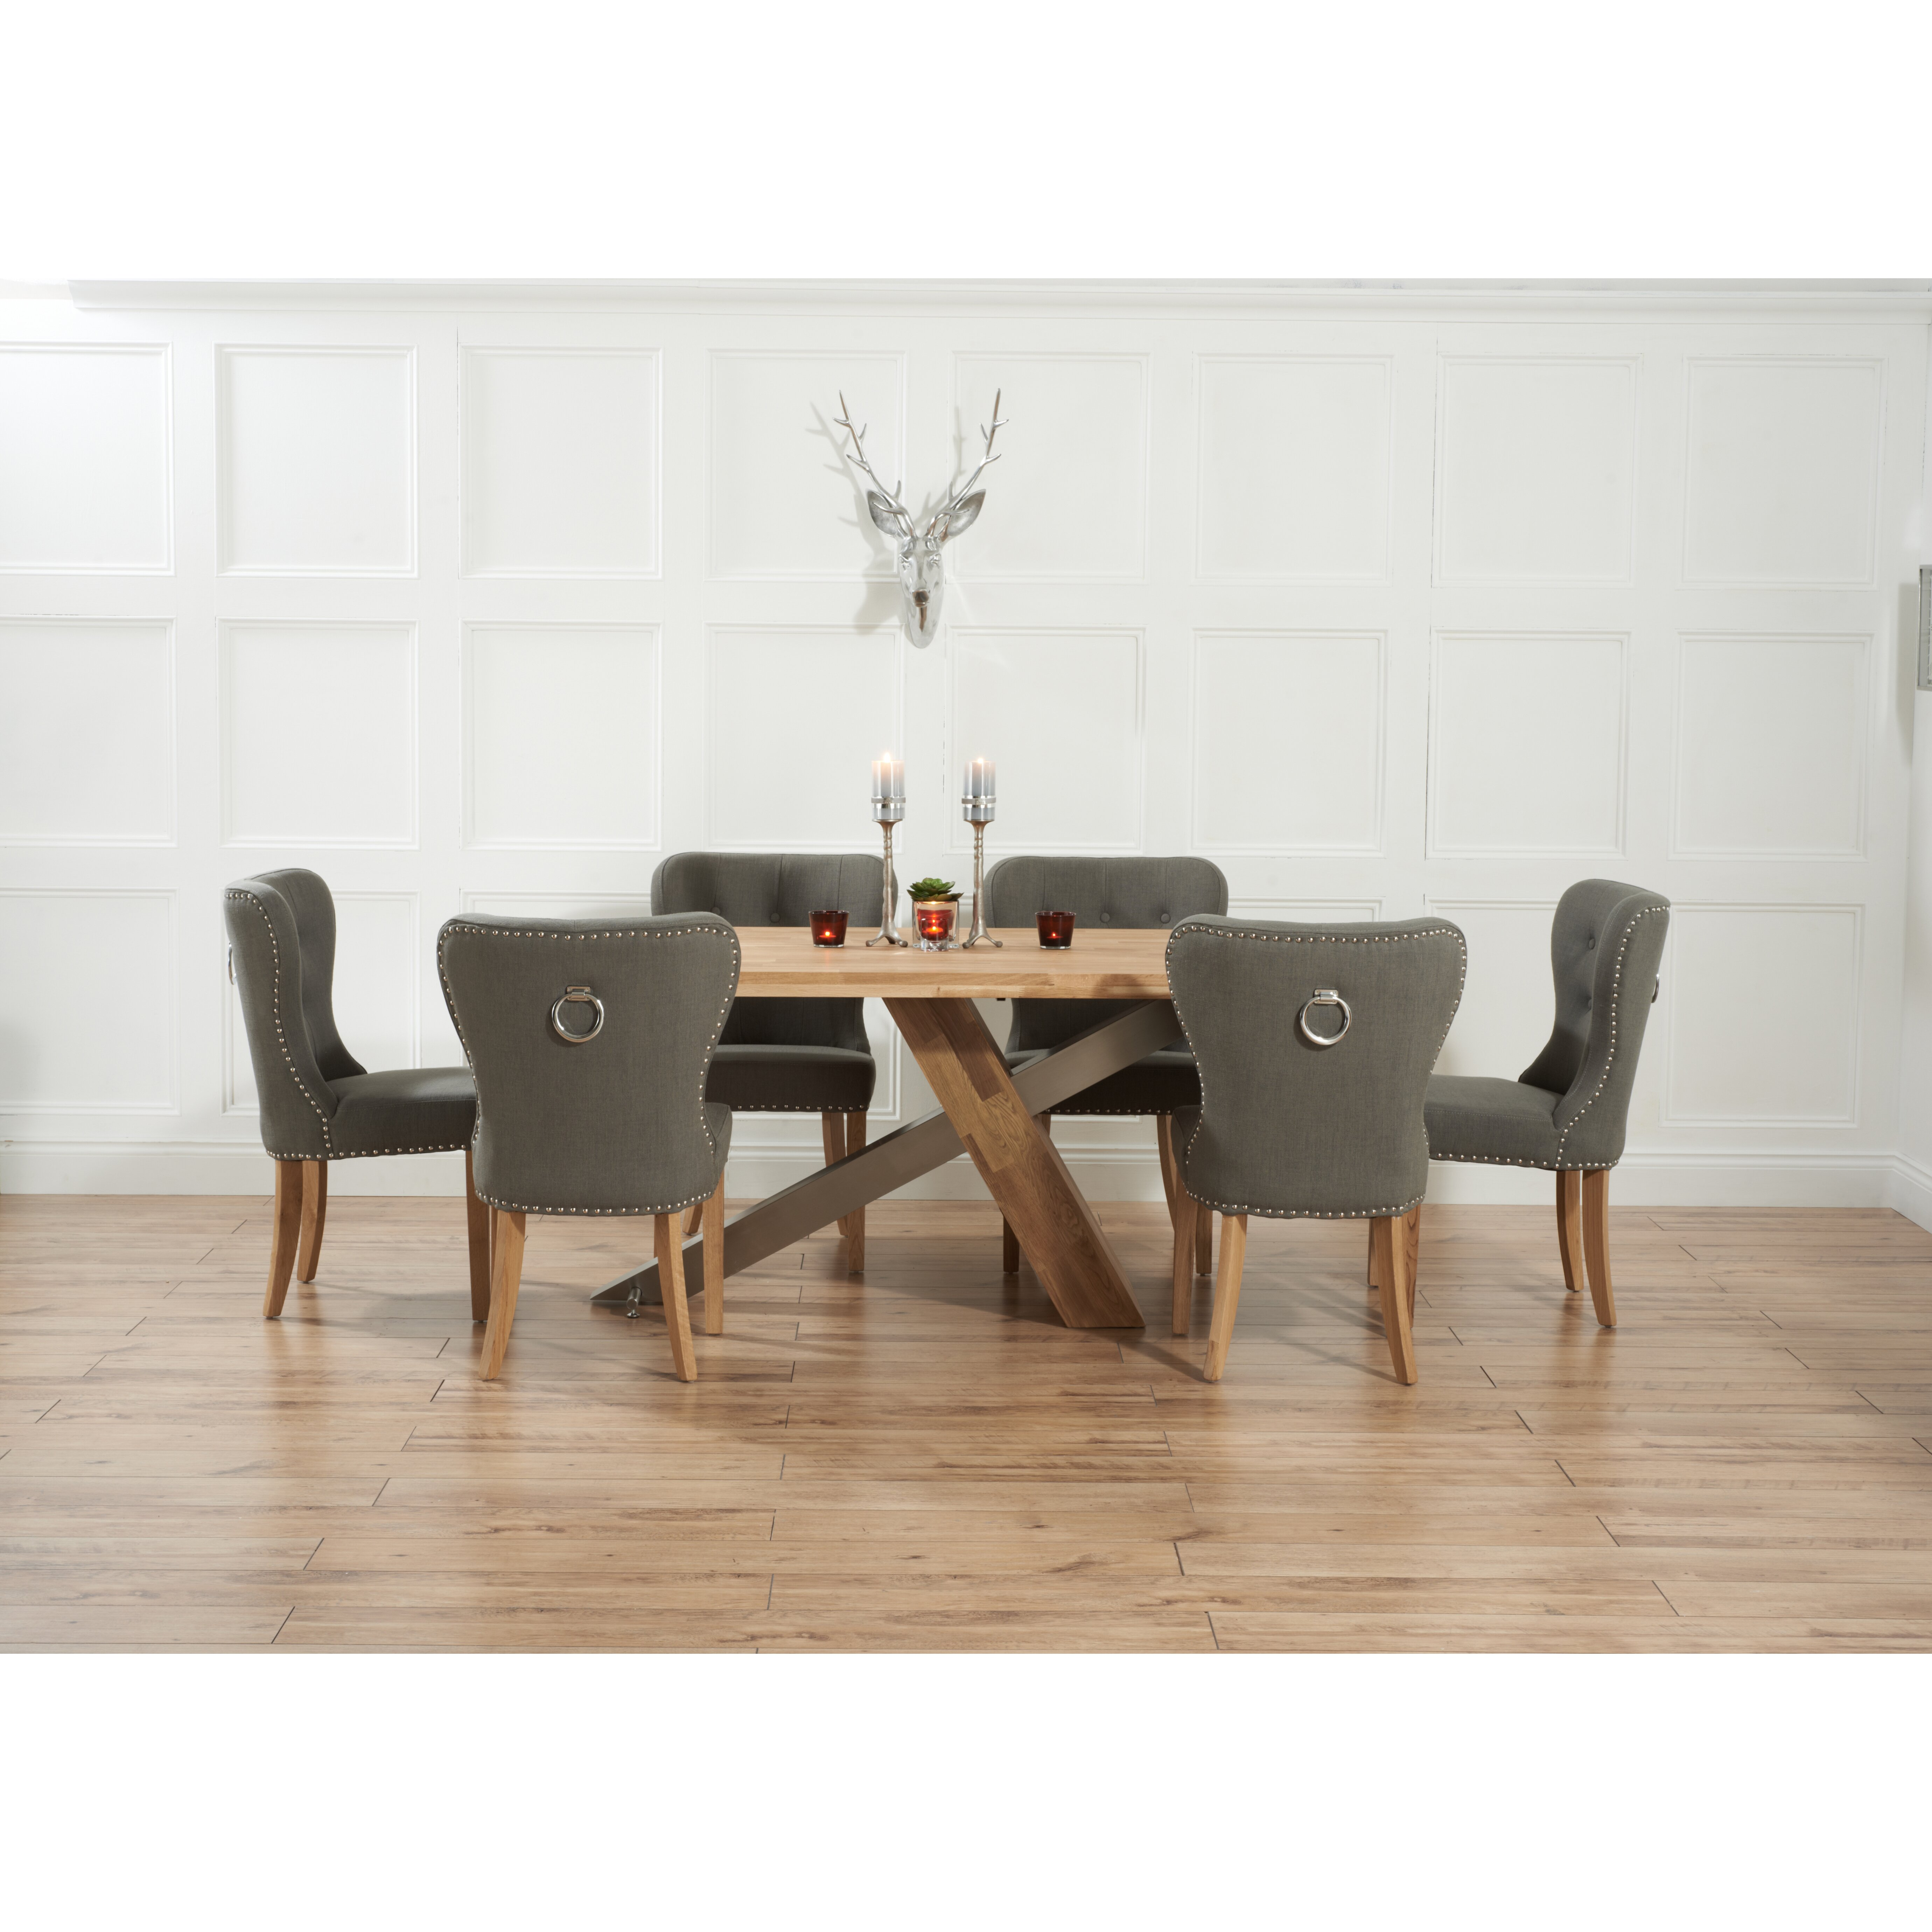 Home etc ohio dining table and 6 chairs wayfair uk for Table and 6 chairs uk